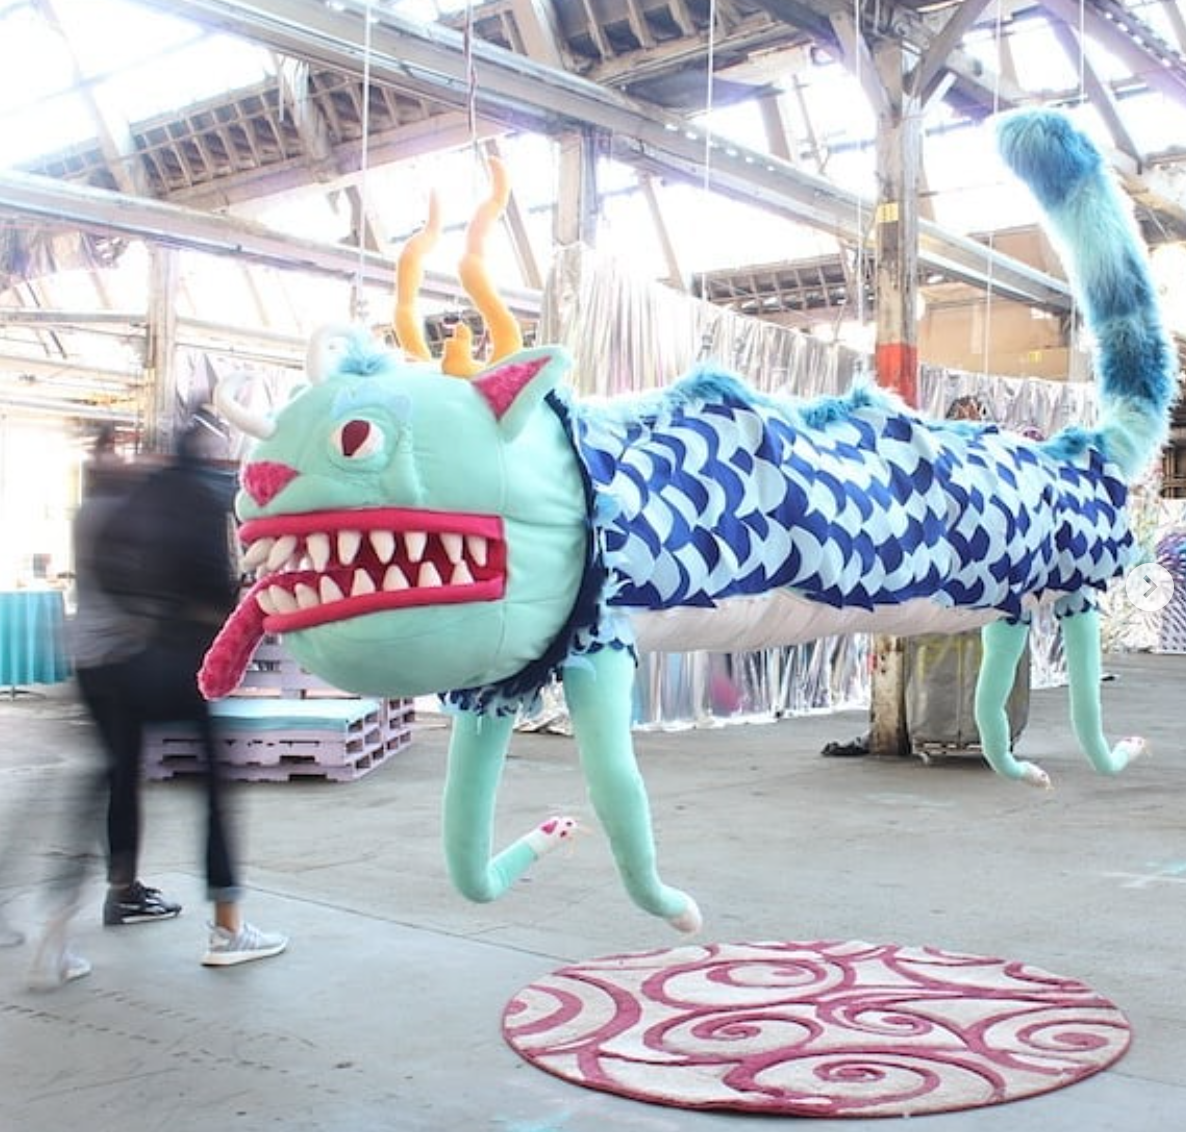 Floating cat dragon for Far Out Factory inside Meow Wolf